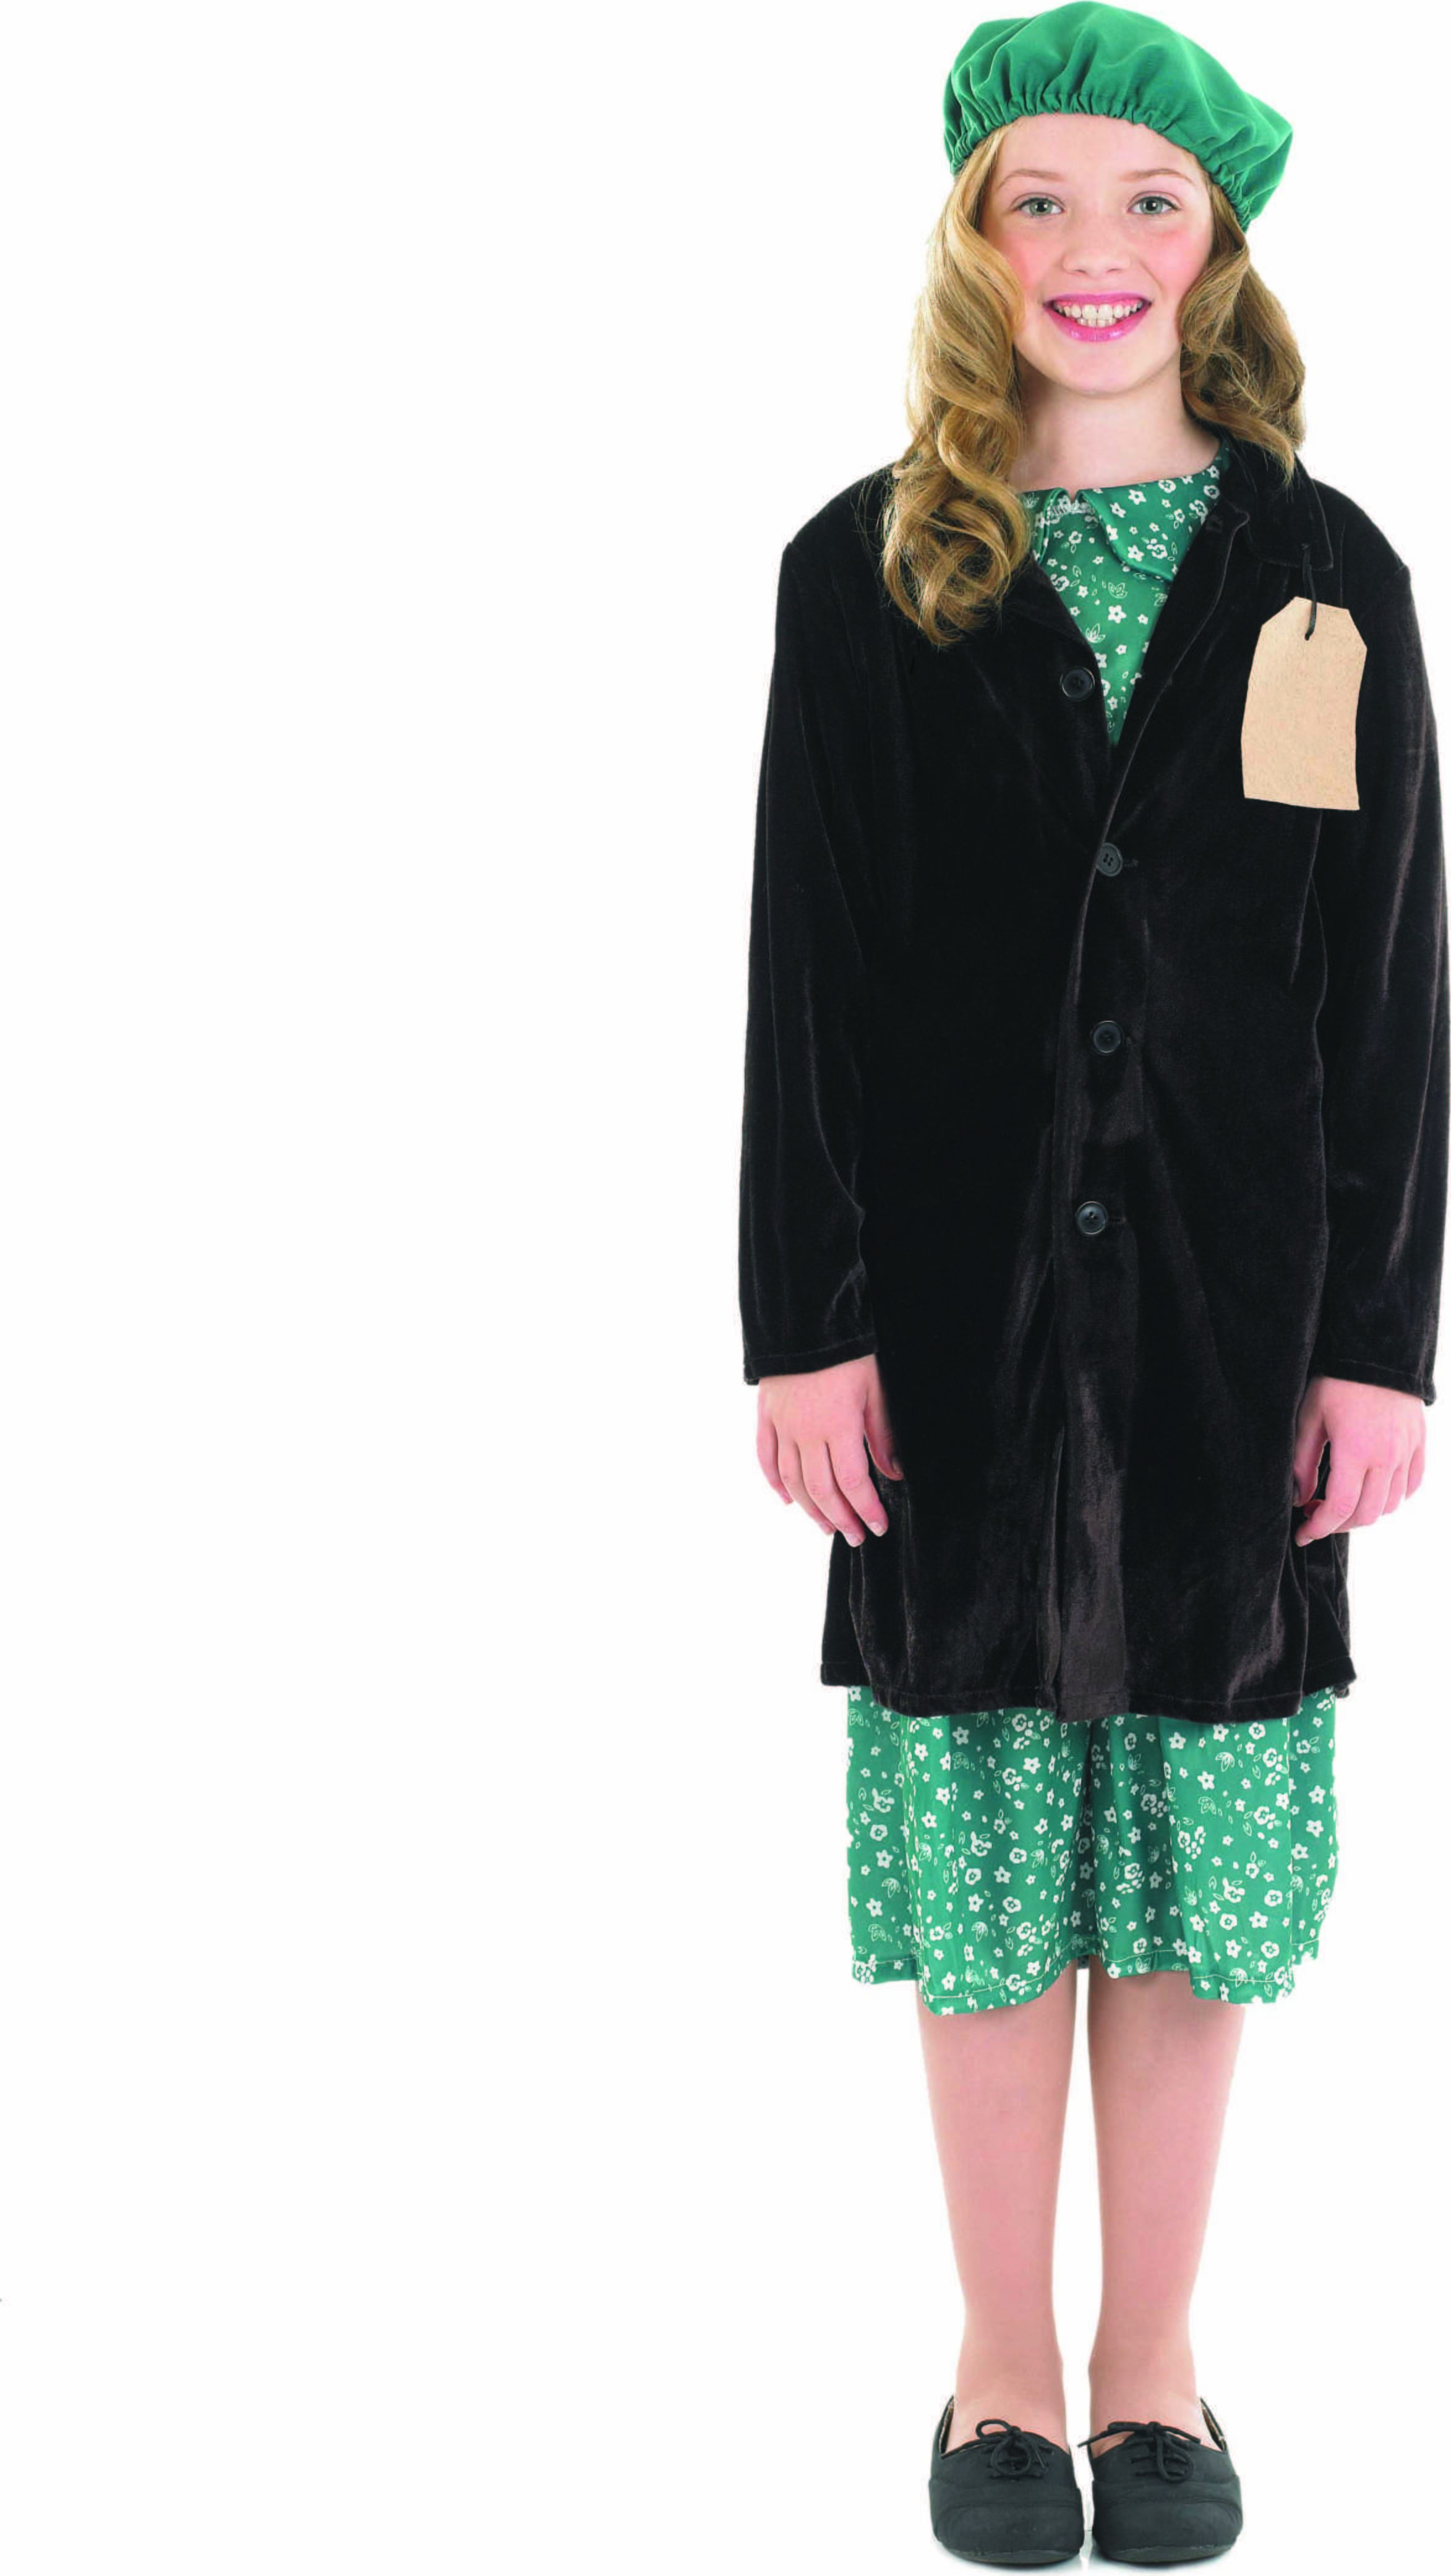 Girls Evacuee Girl With Coat Fairy Tales Outfit - (Green, Brown)